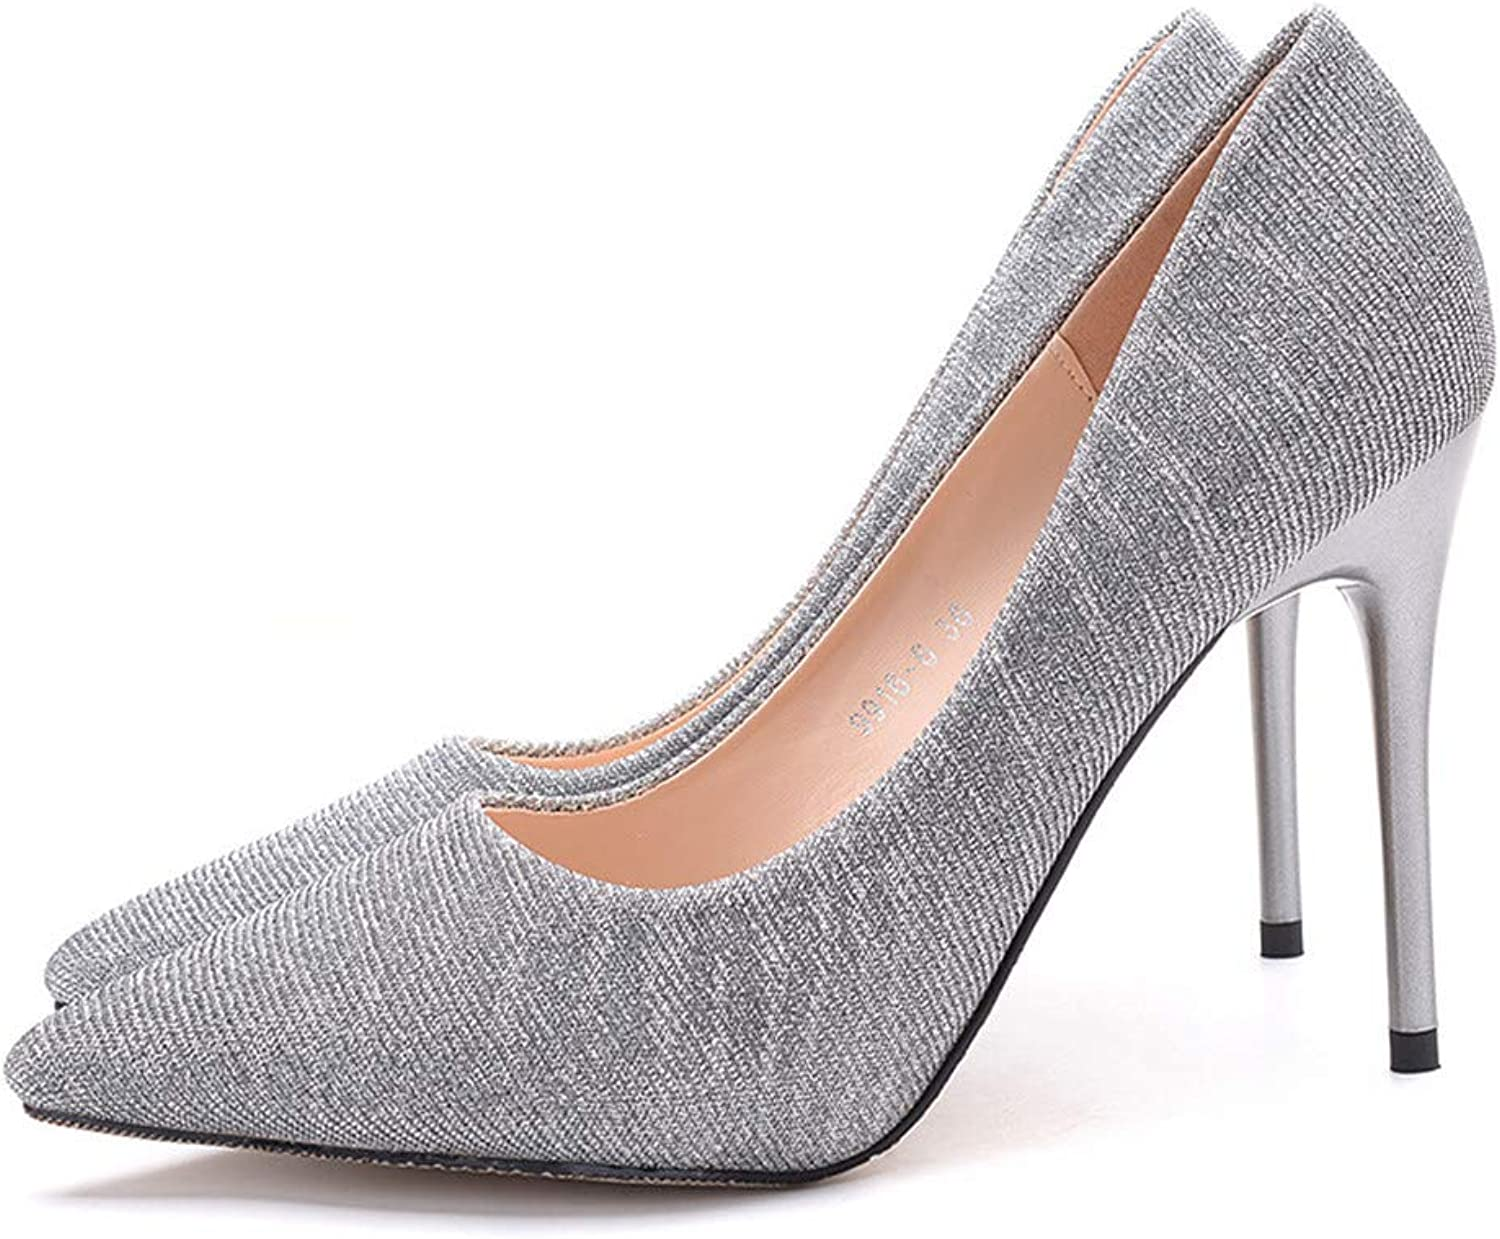 Meiren Sequined Single shoes Women's High Heel Pointed Stiletto gold Sexy High Heel shoes